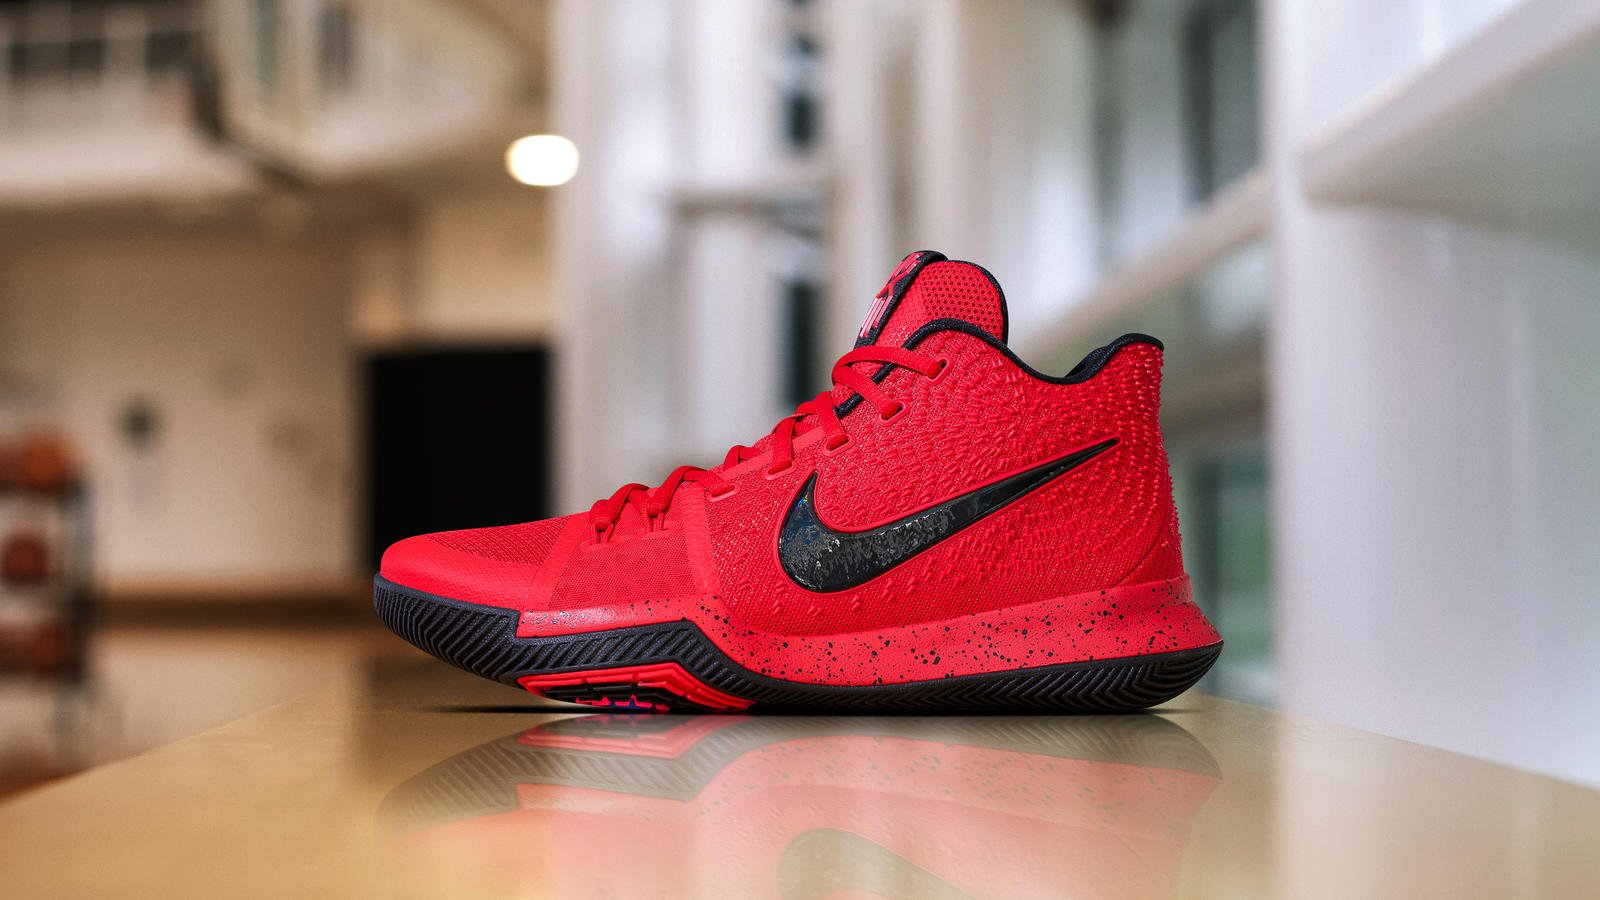 Nike Kyrie 3 All-Star PE